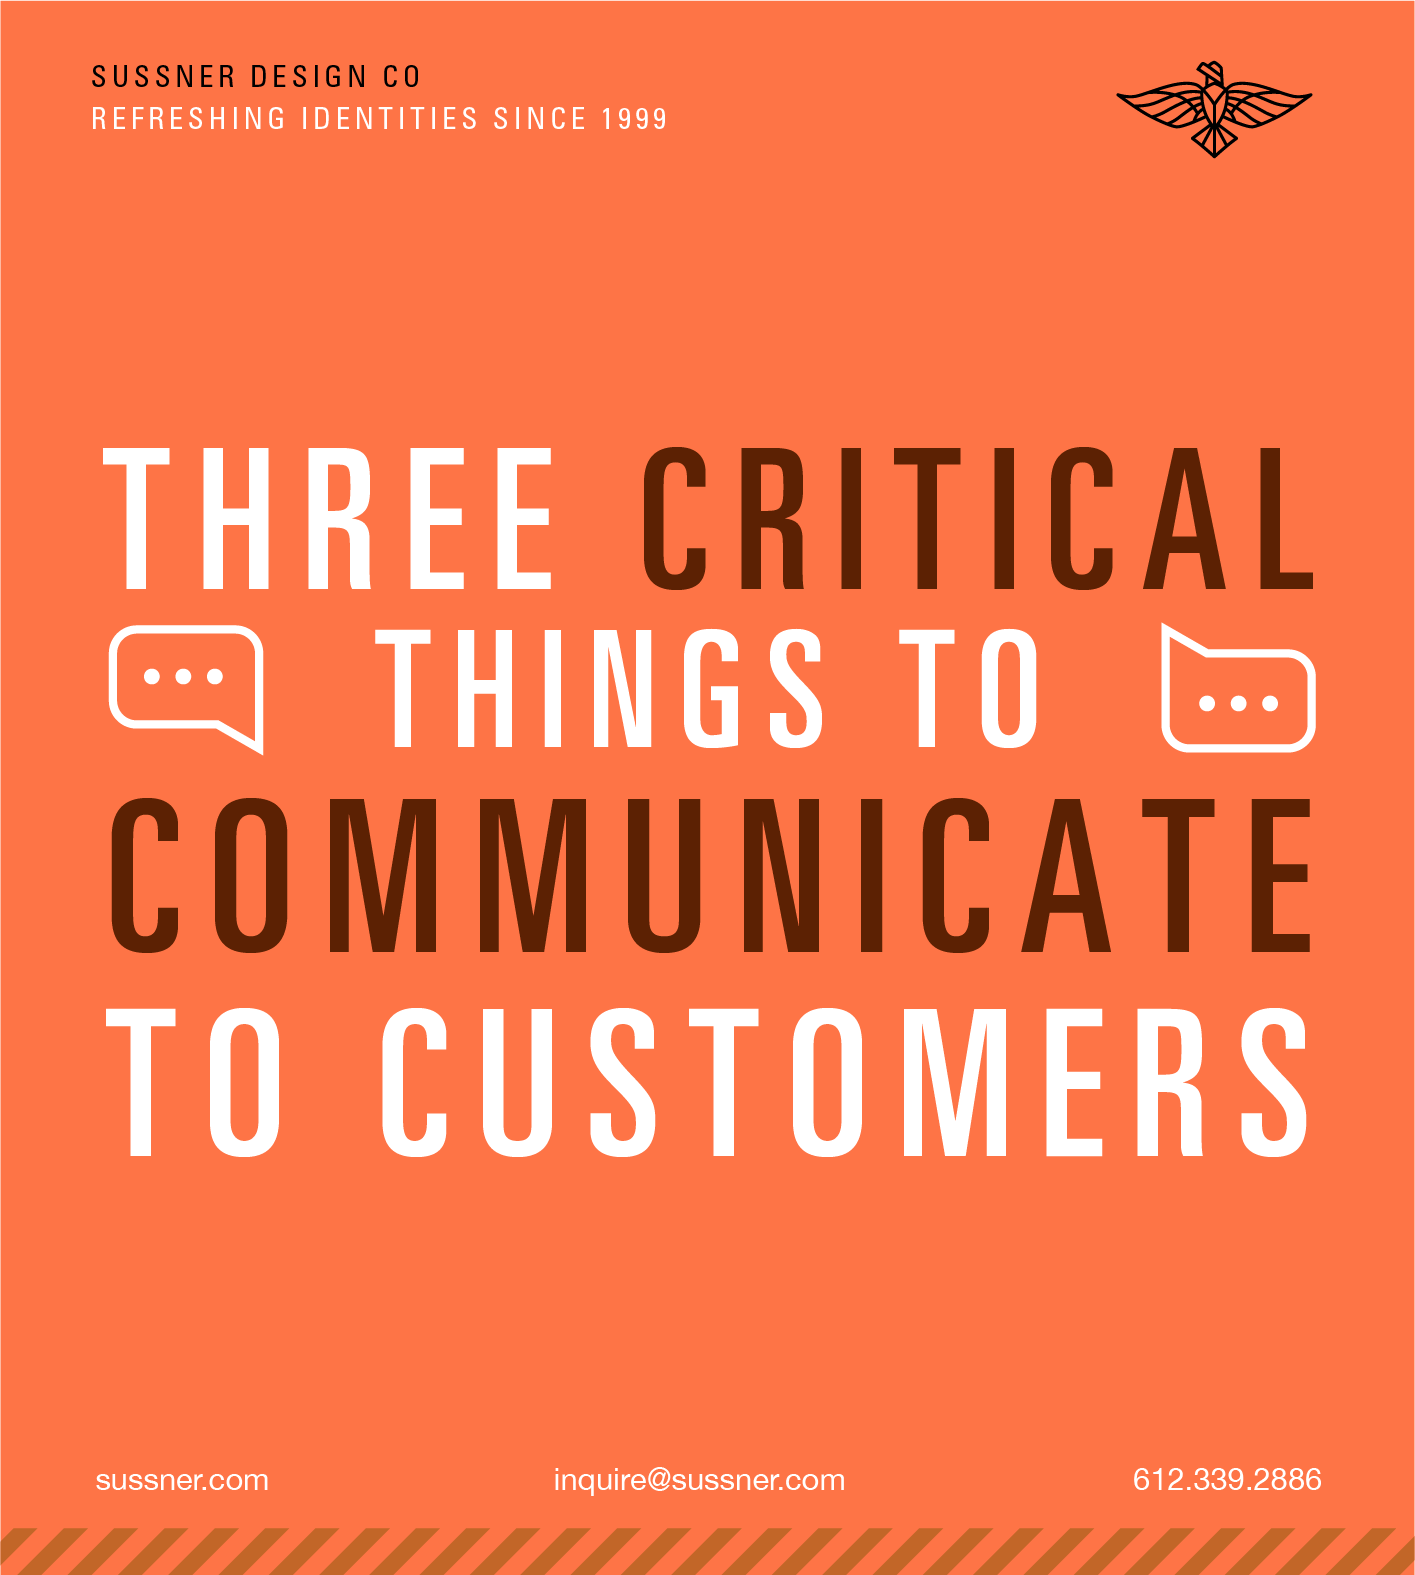 Three critical things to communicate to customers